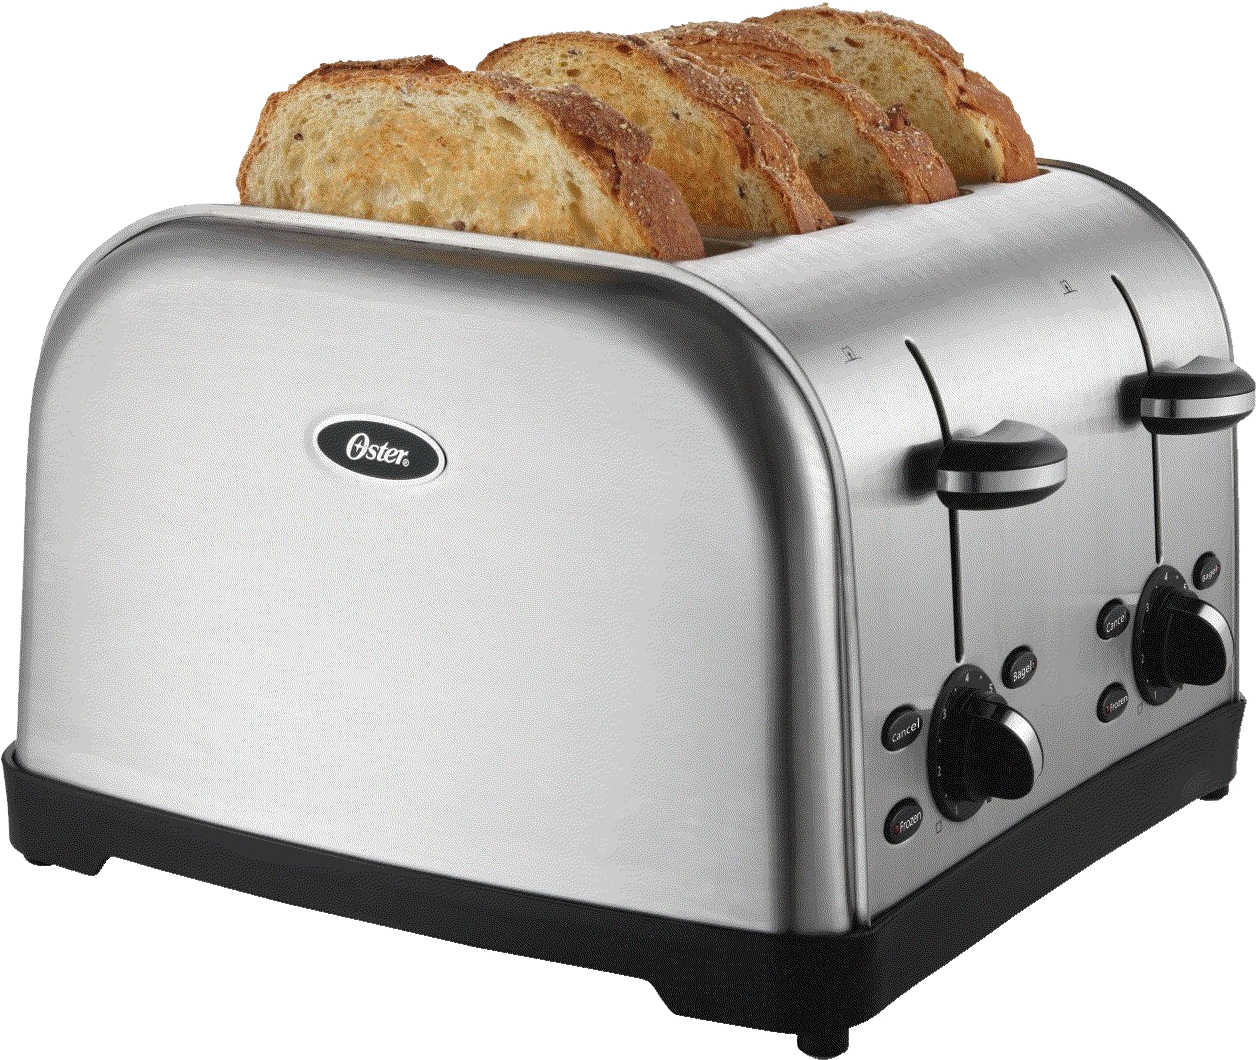 Oster Toaster PNG Image